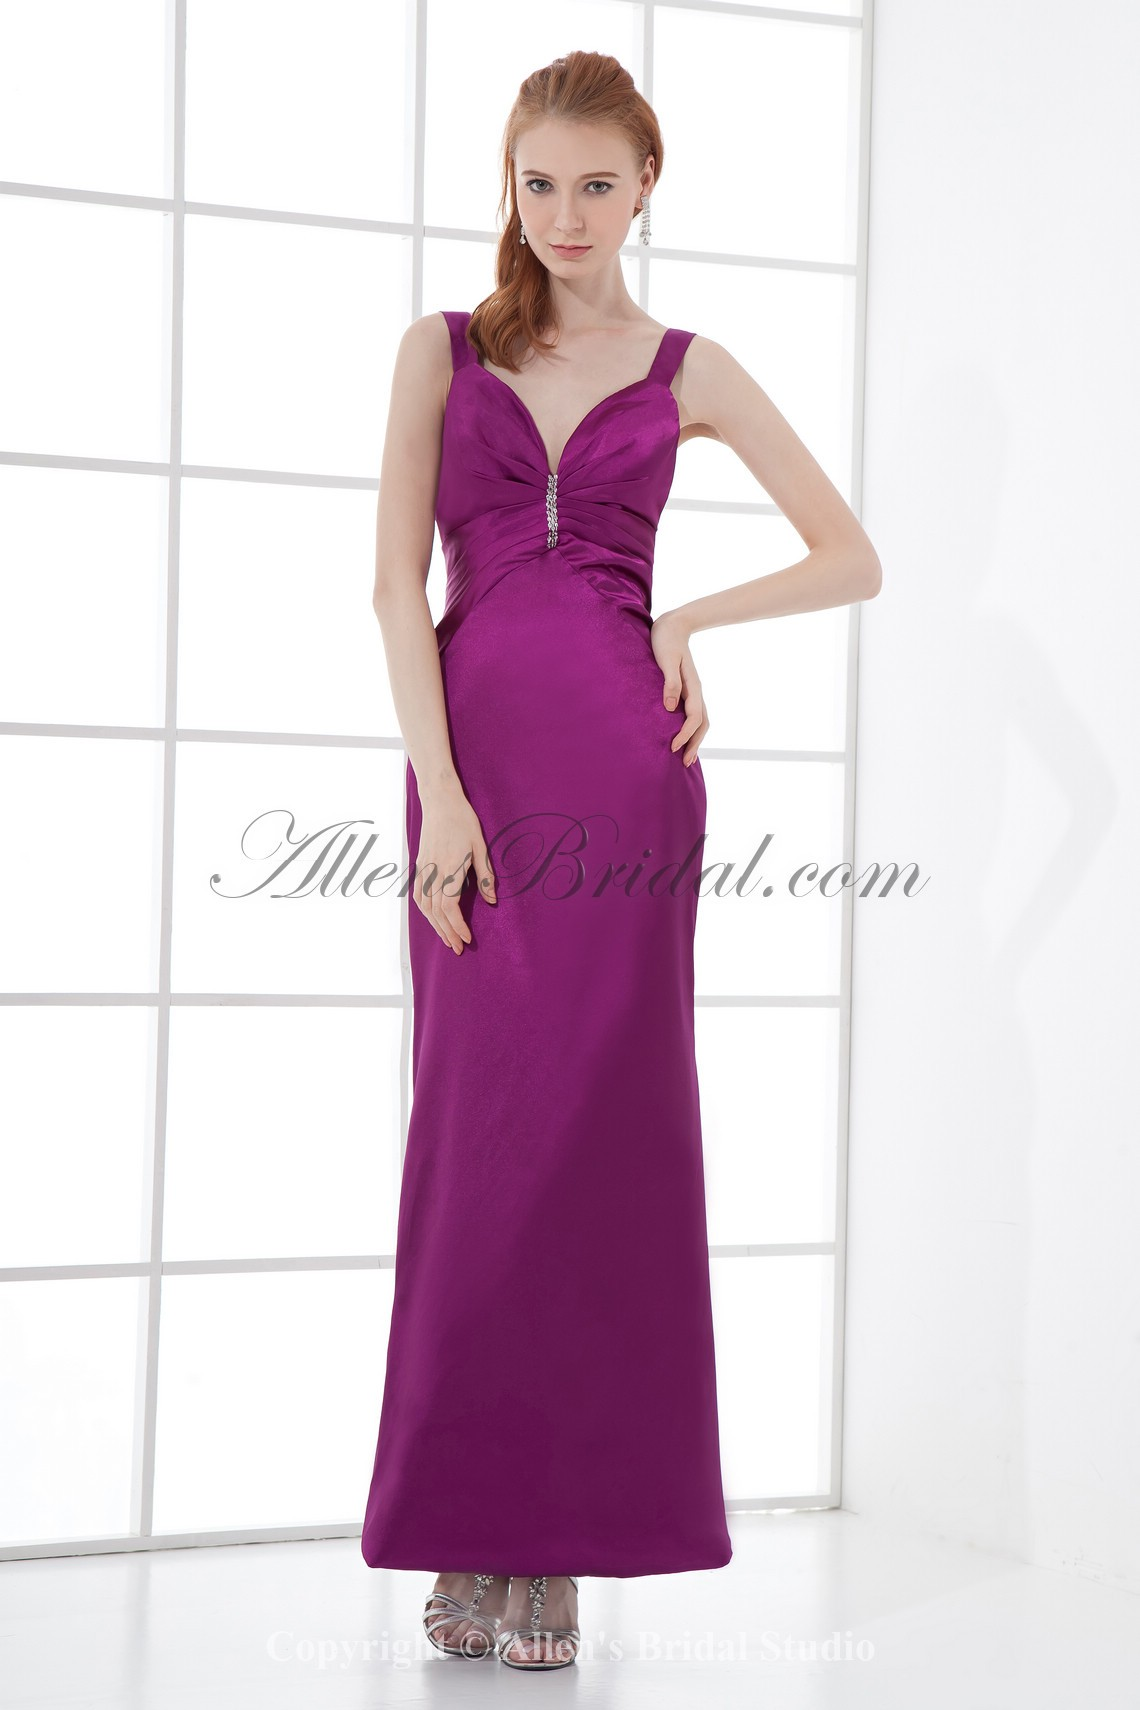 /68-537/satin-straps-sheath-ankle-length-sequins-prom-dress.jpg